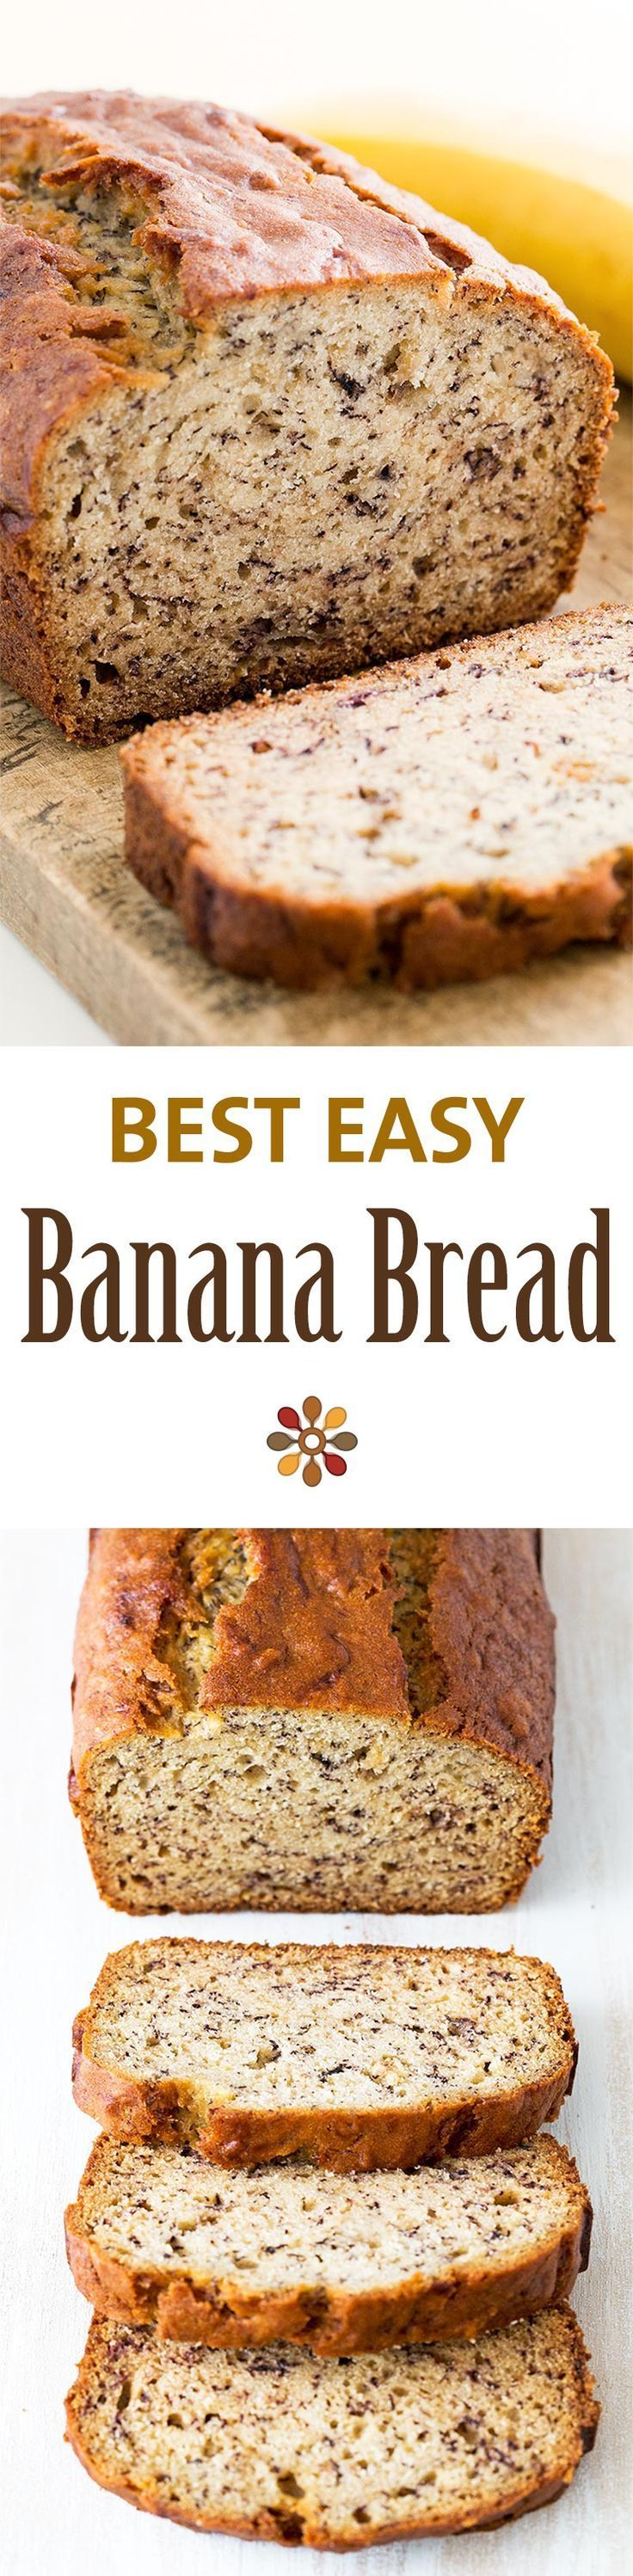 Easy classic recipes